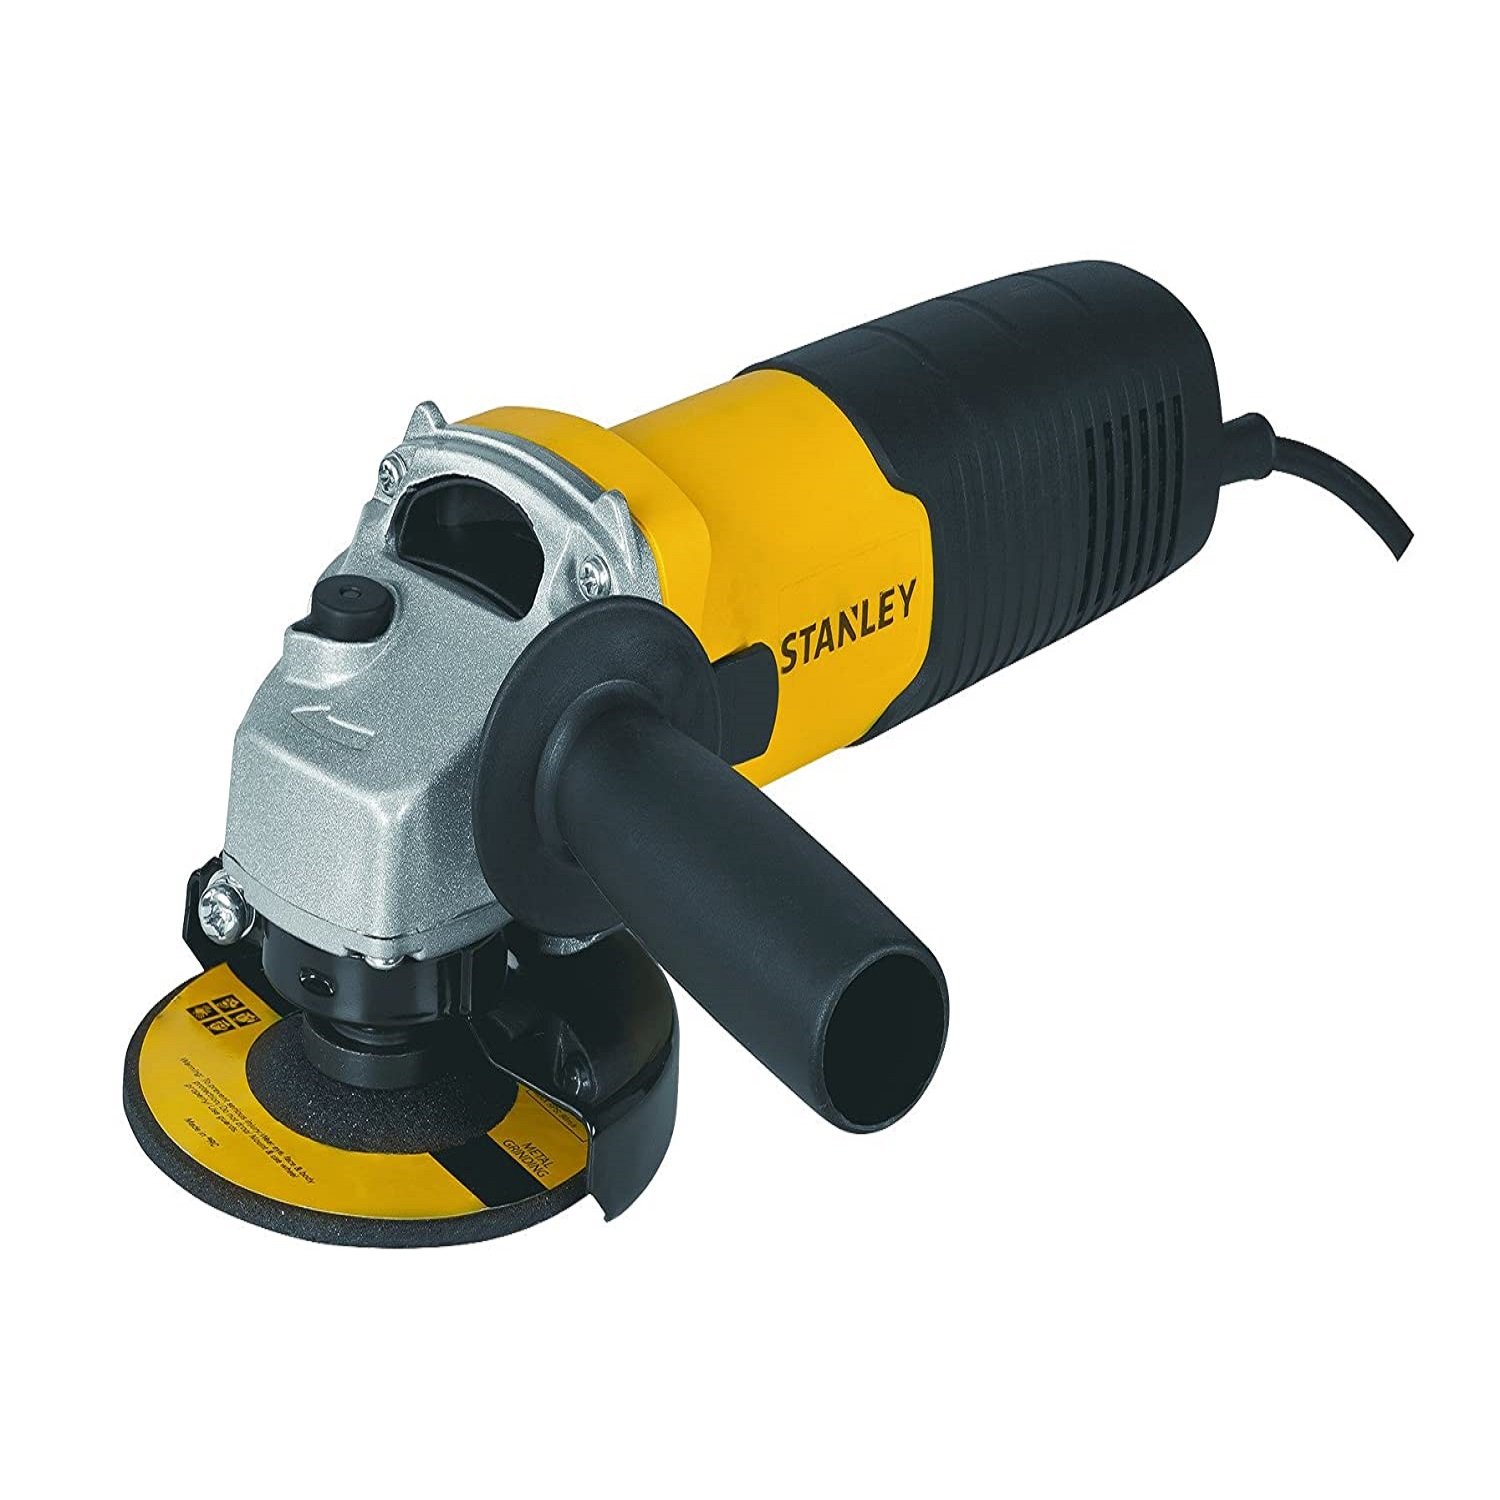 610W Small Angle Grinder 115 mm